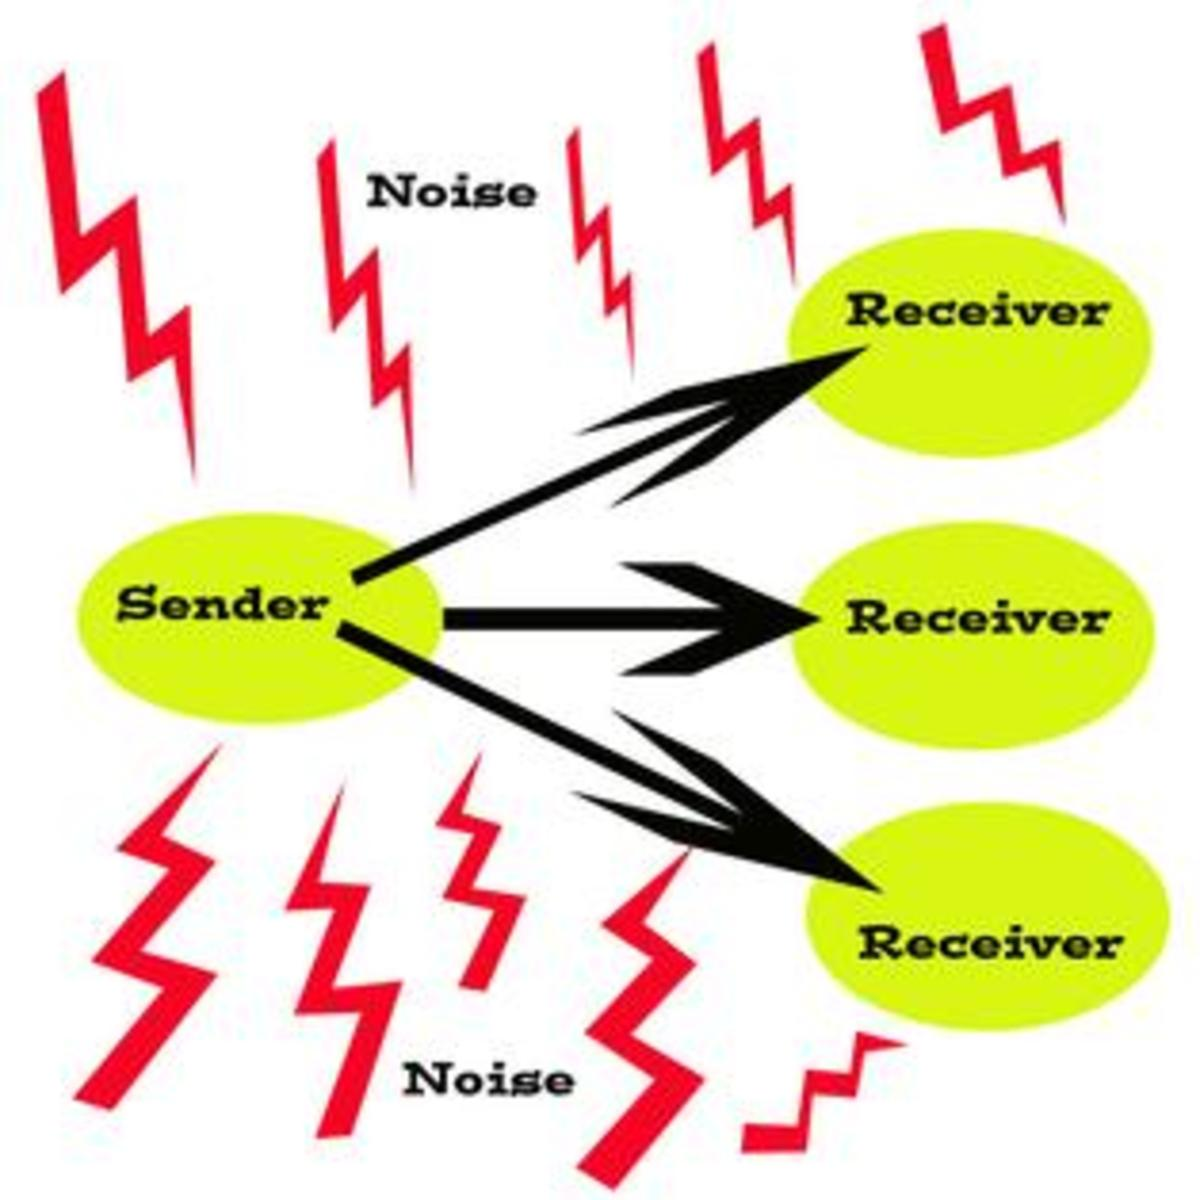 Shannon and Weaver's Traditional Model of Communication: This model of communication stresses linear communication. The sender sends messages to the receivers. Although those messages are affected by noise (disruptions, technological issues, accents